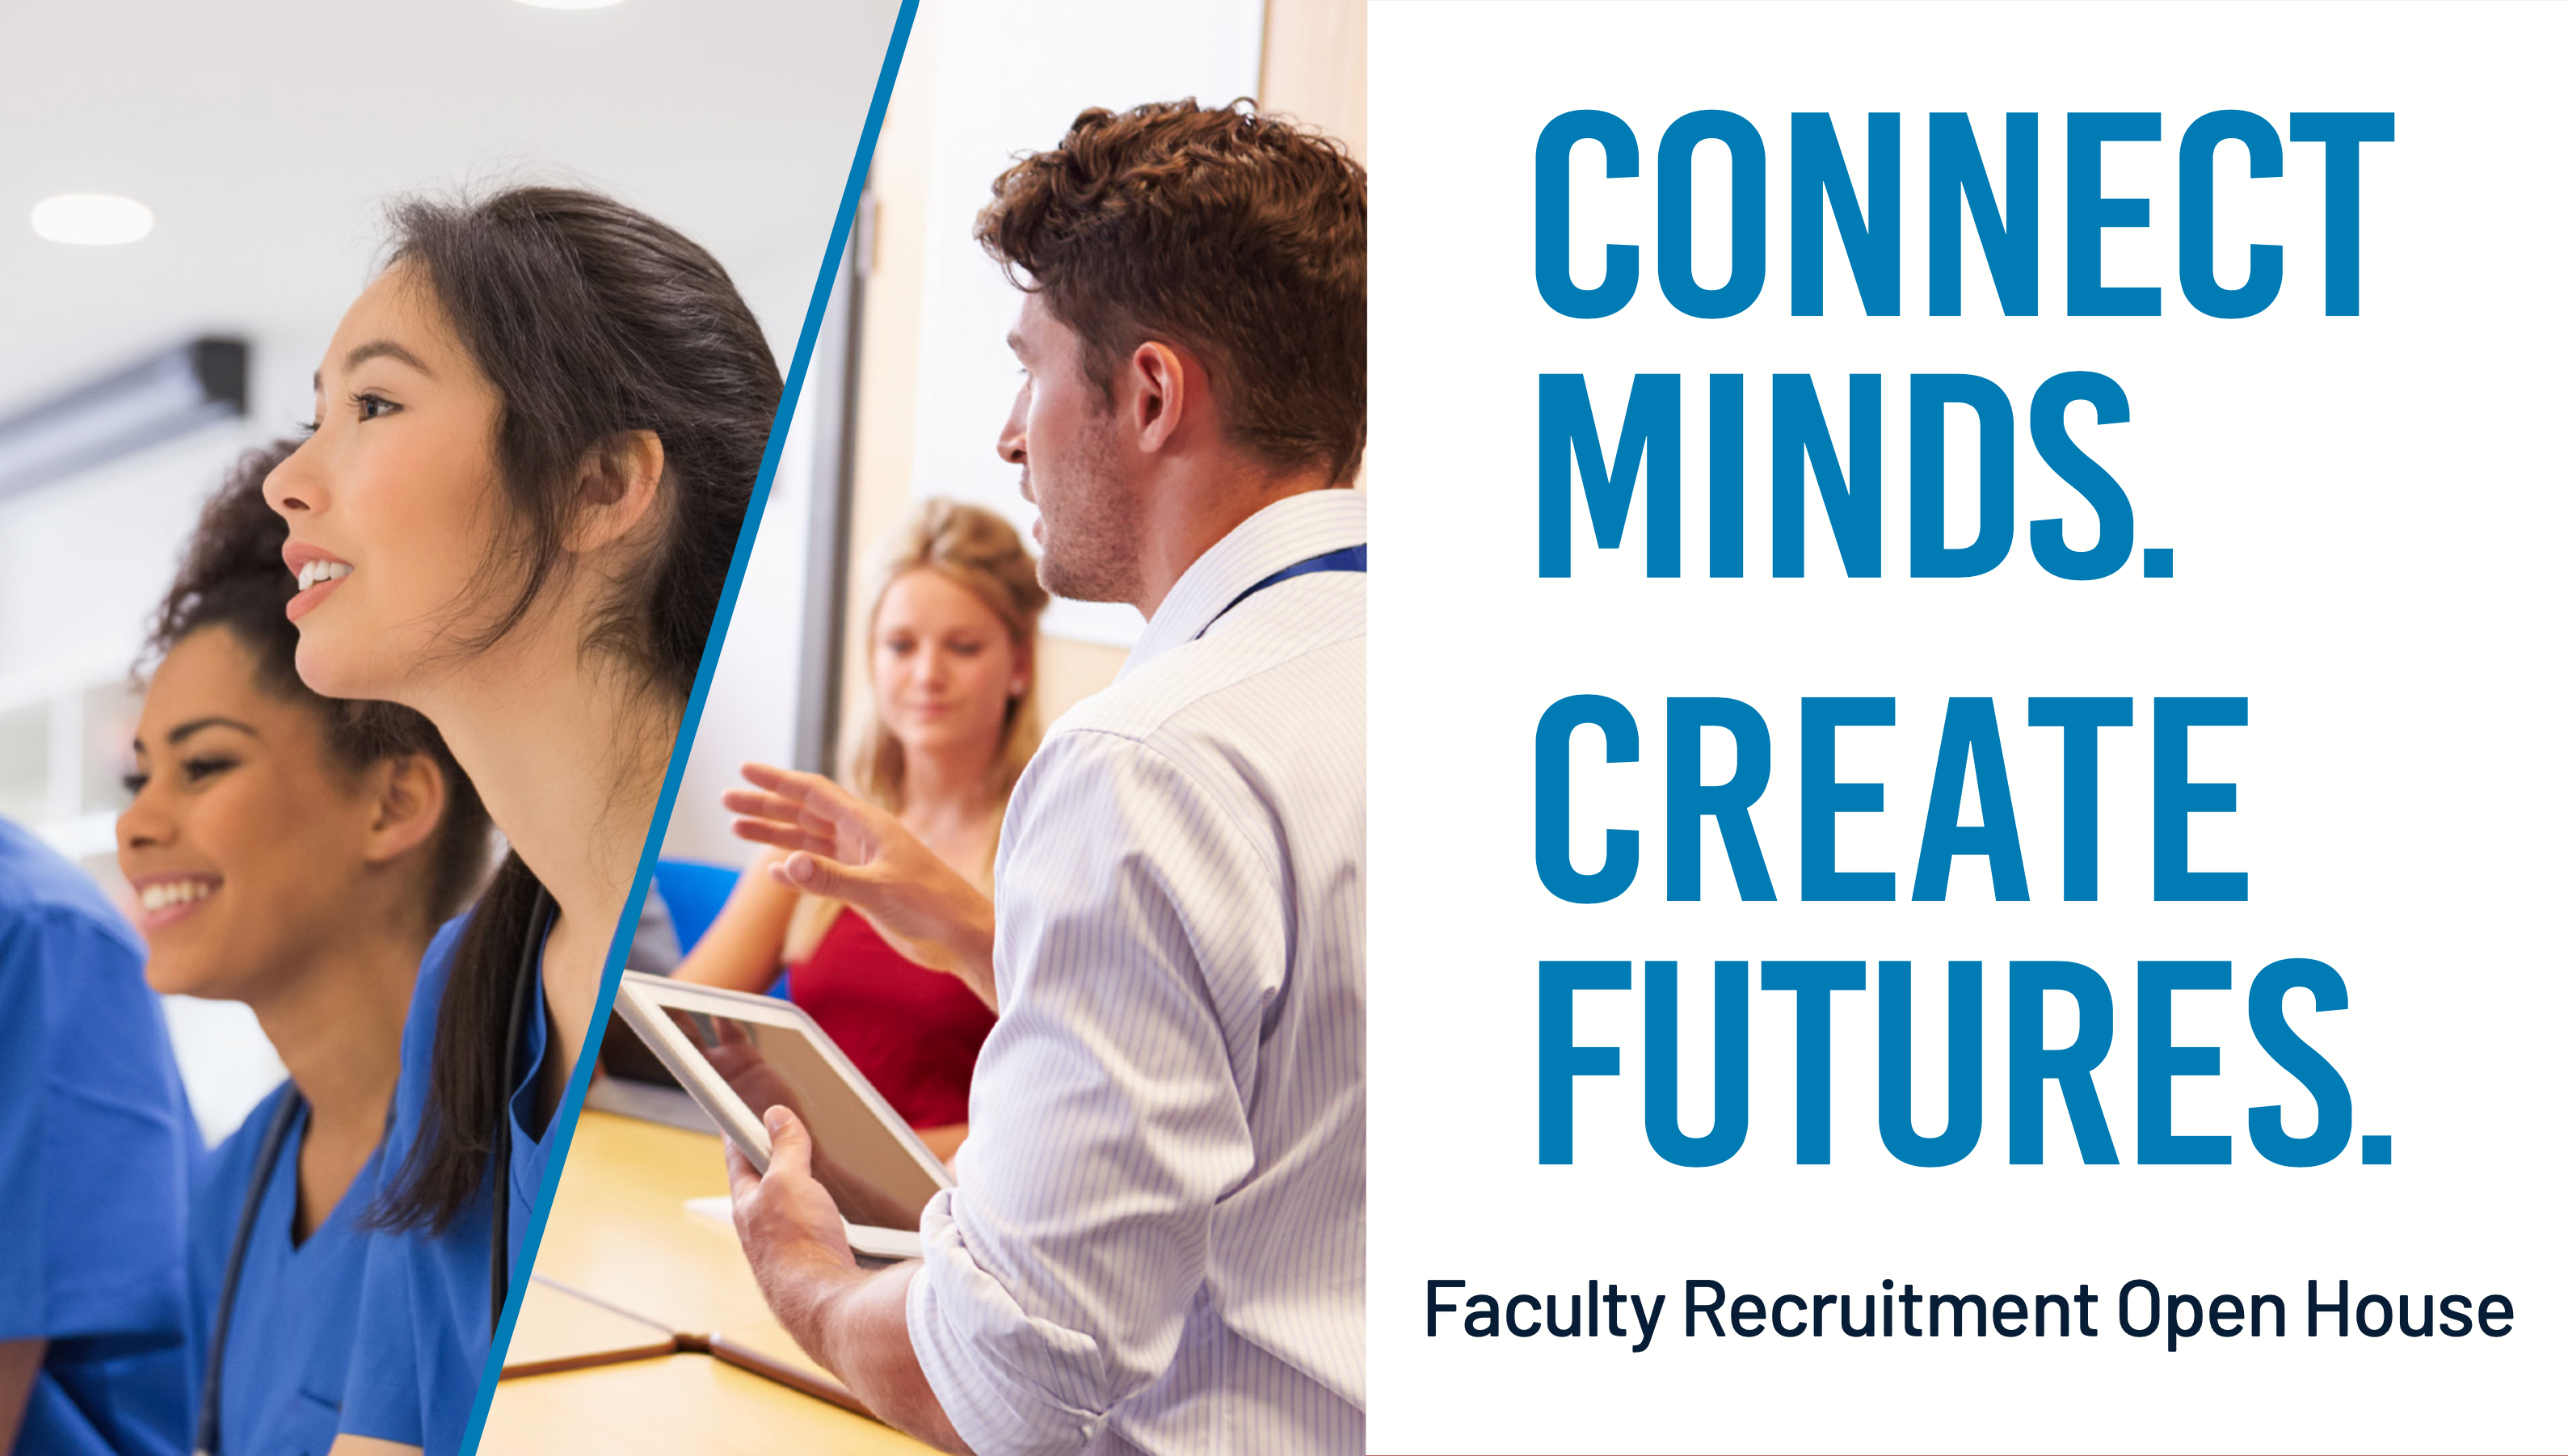 Connect Minds. Create Futures. Faculty Recruitment Open House